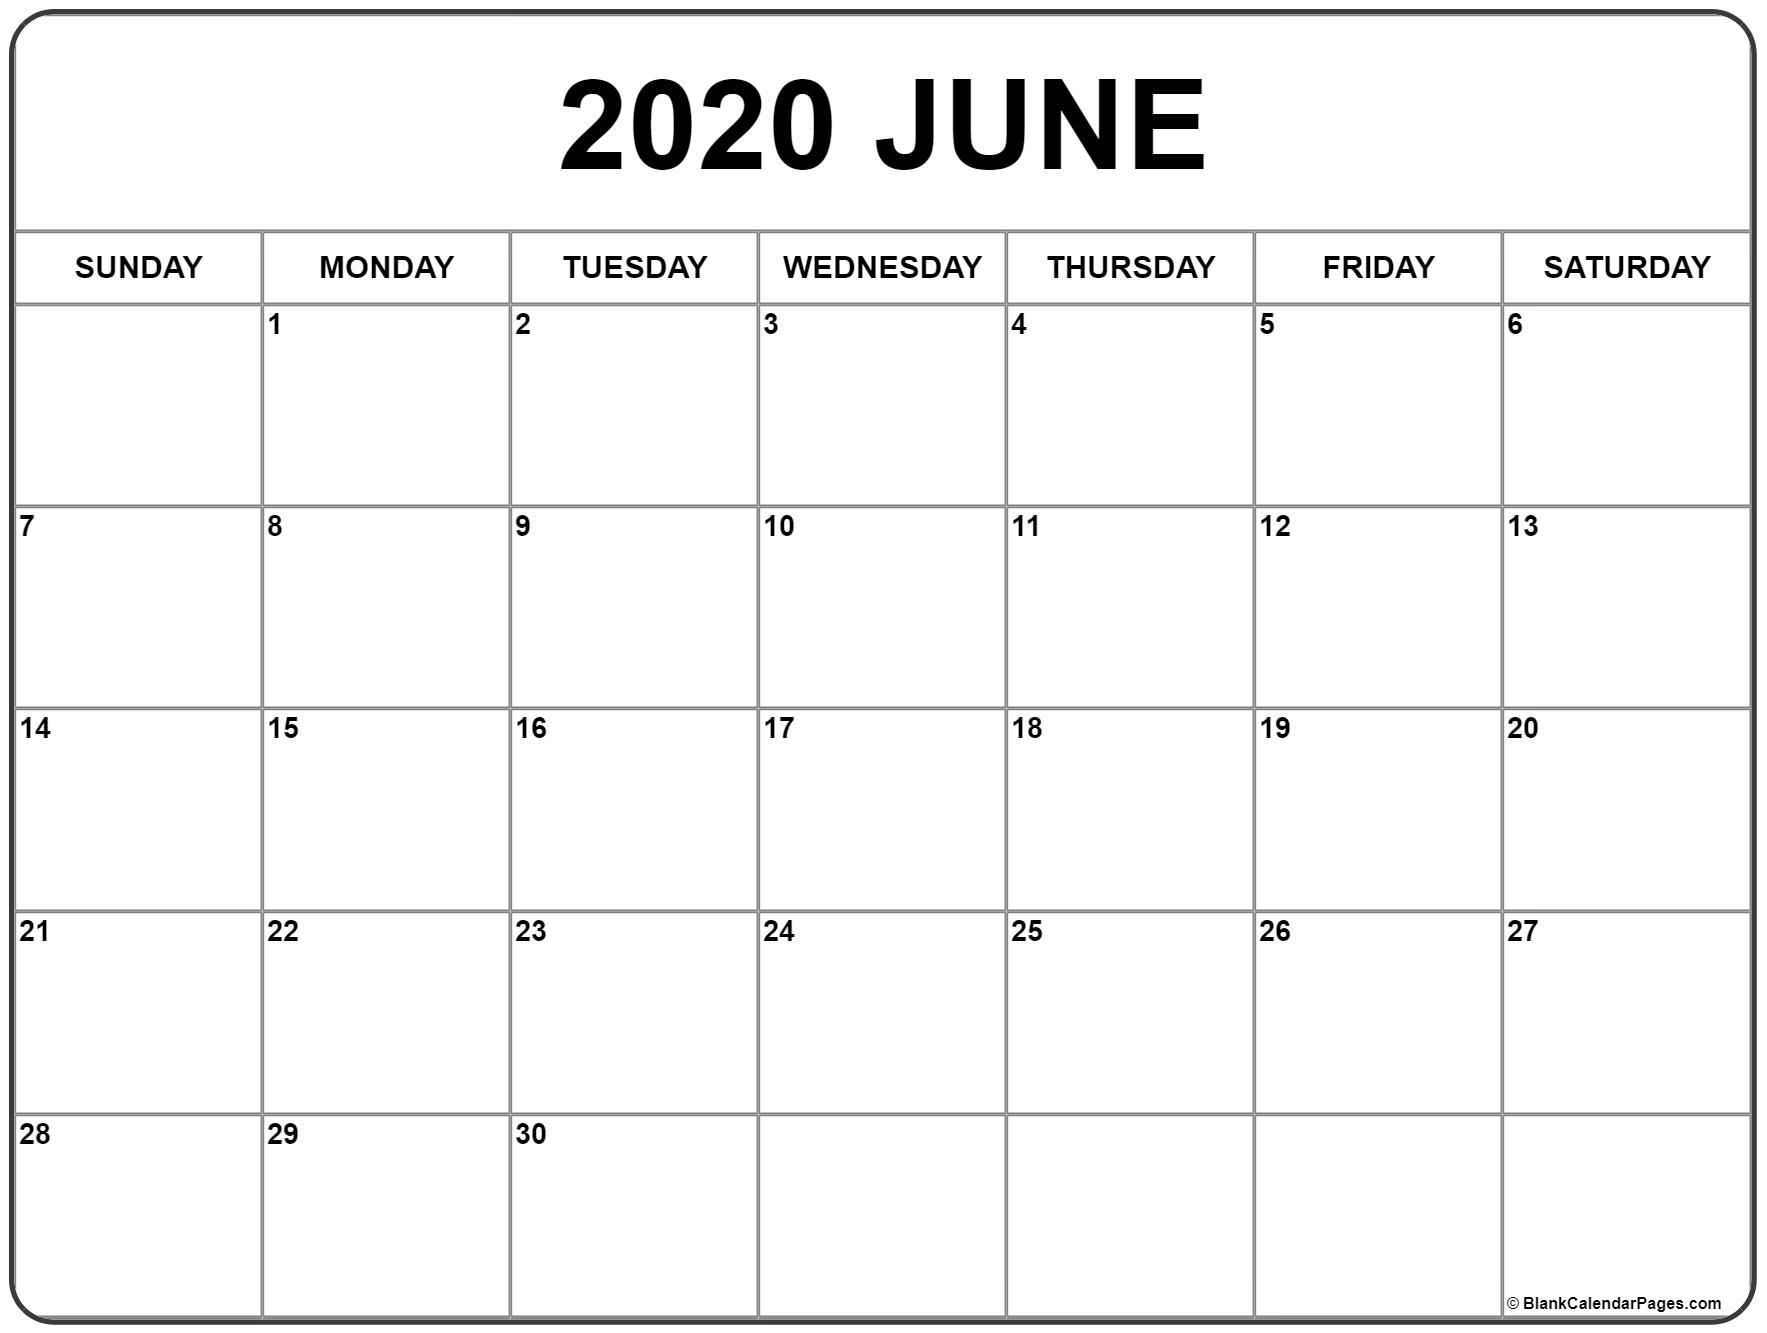 June 2020 Calendar | Free Printable Monthly Calendars regarding Printable Calendar With Space To Write